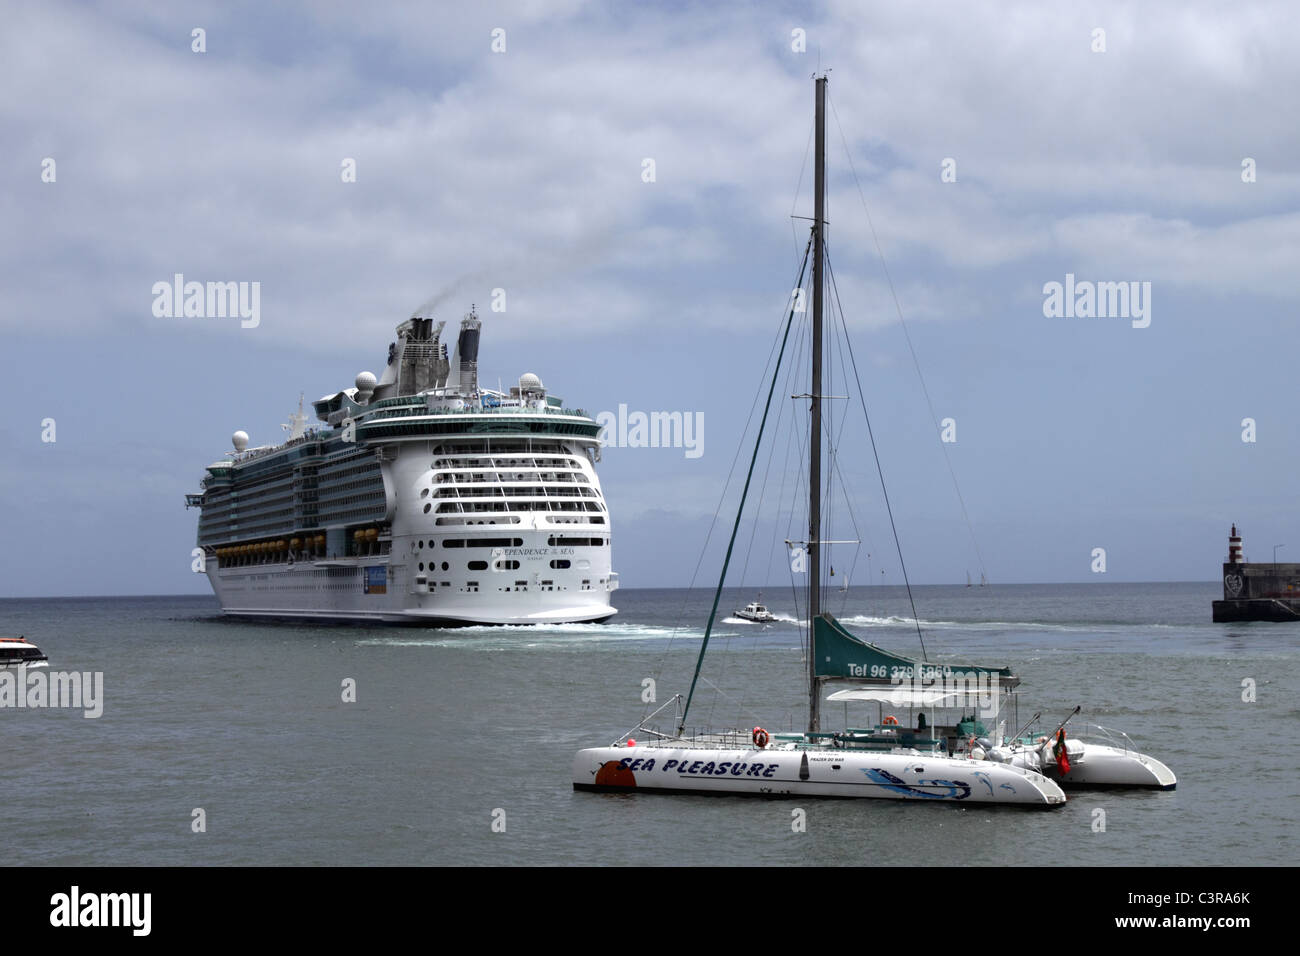 Royal Caribbean International Cruise Liner Independence of the Seas sailing out from Funchal harbour - Stock Image